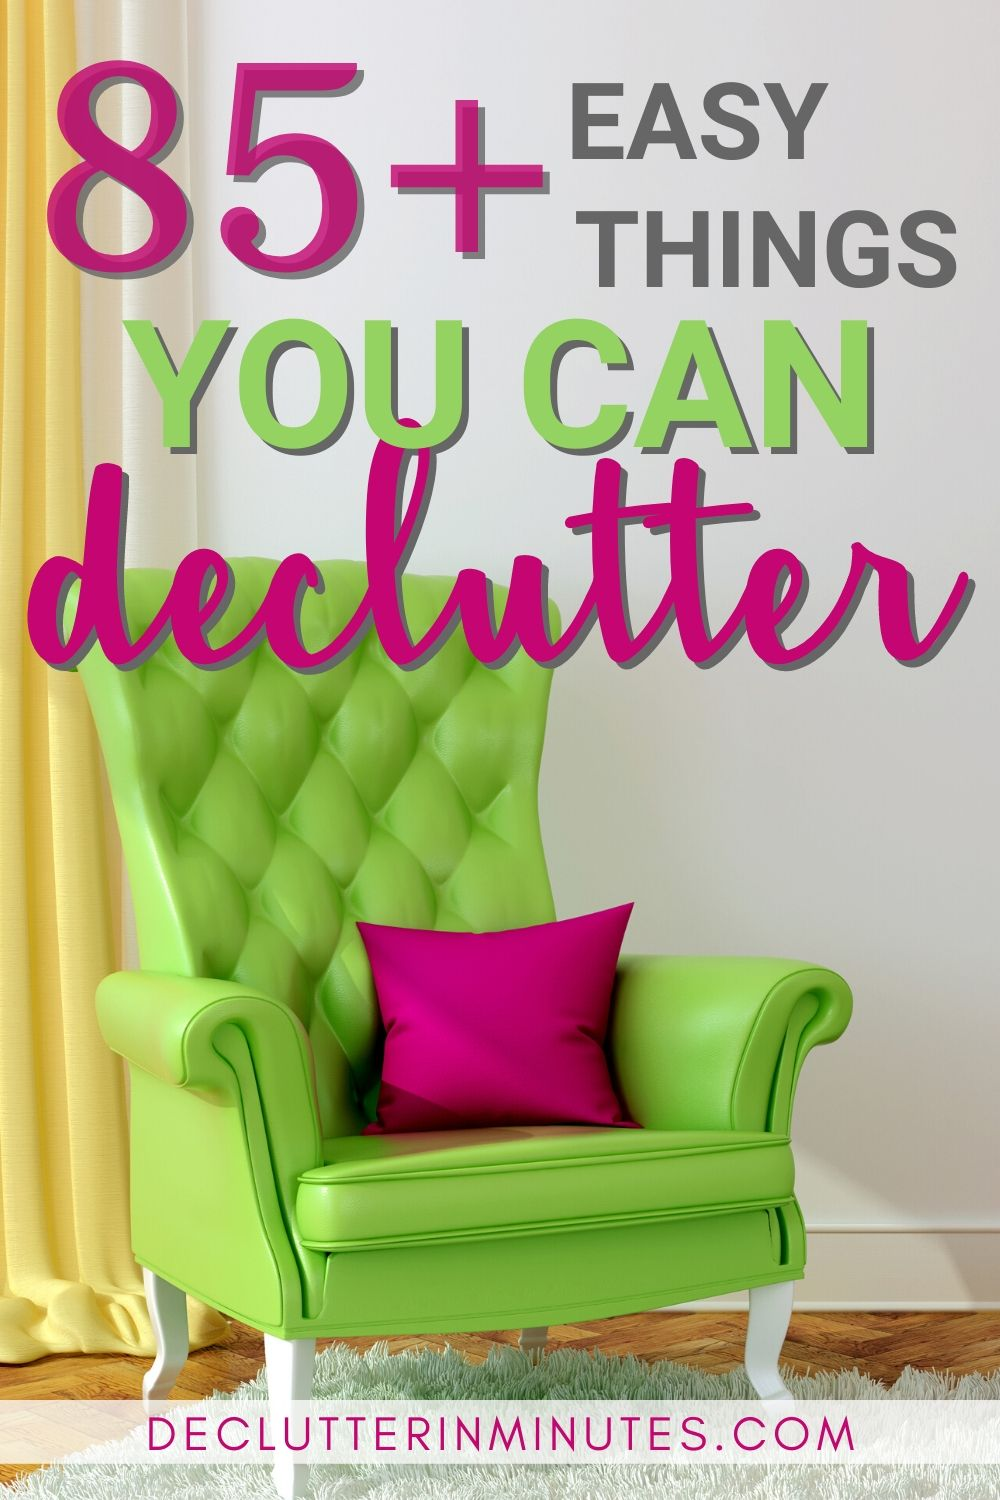 Wish there was an easy way to declutter? Wish there was a checklist you could just follow? A list that took you room by room and showed you simple things you can declutter without freaking out? Well, that is exactly what I have for you! Your free decluttering checklist that will help you with things to declutter your home fast. Remove the clutter so you can organize your room and home without overwhelm. Get started decluttering today. #clutter #declutterchecklist #declutterinminutes